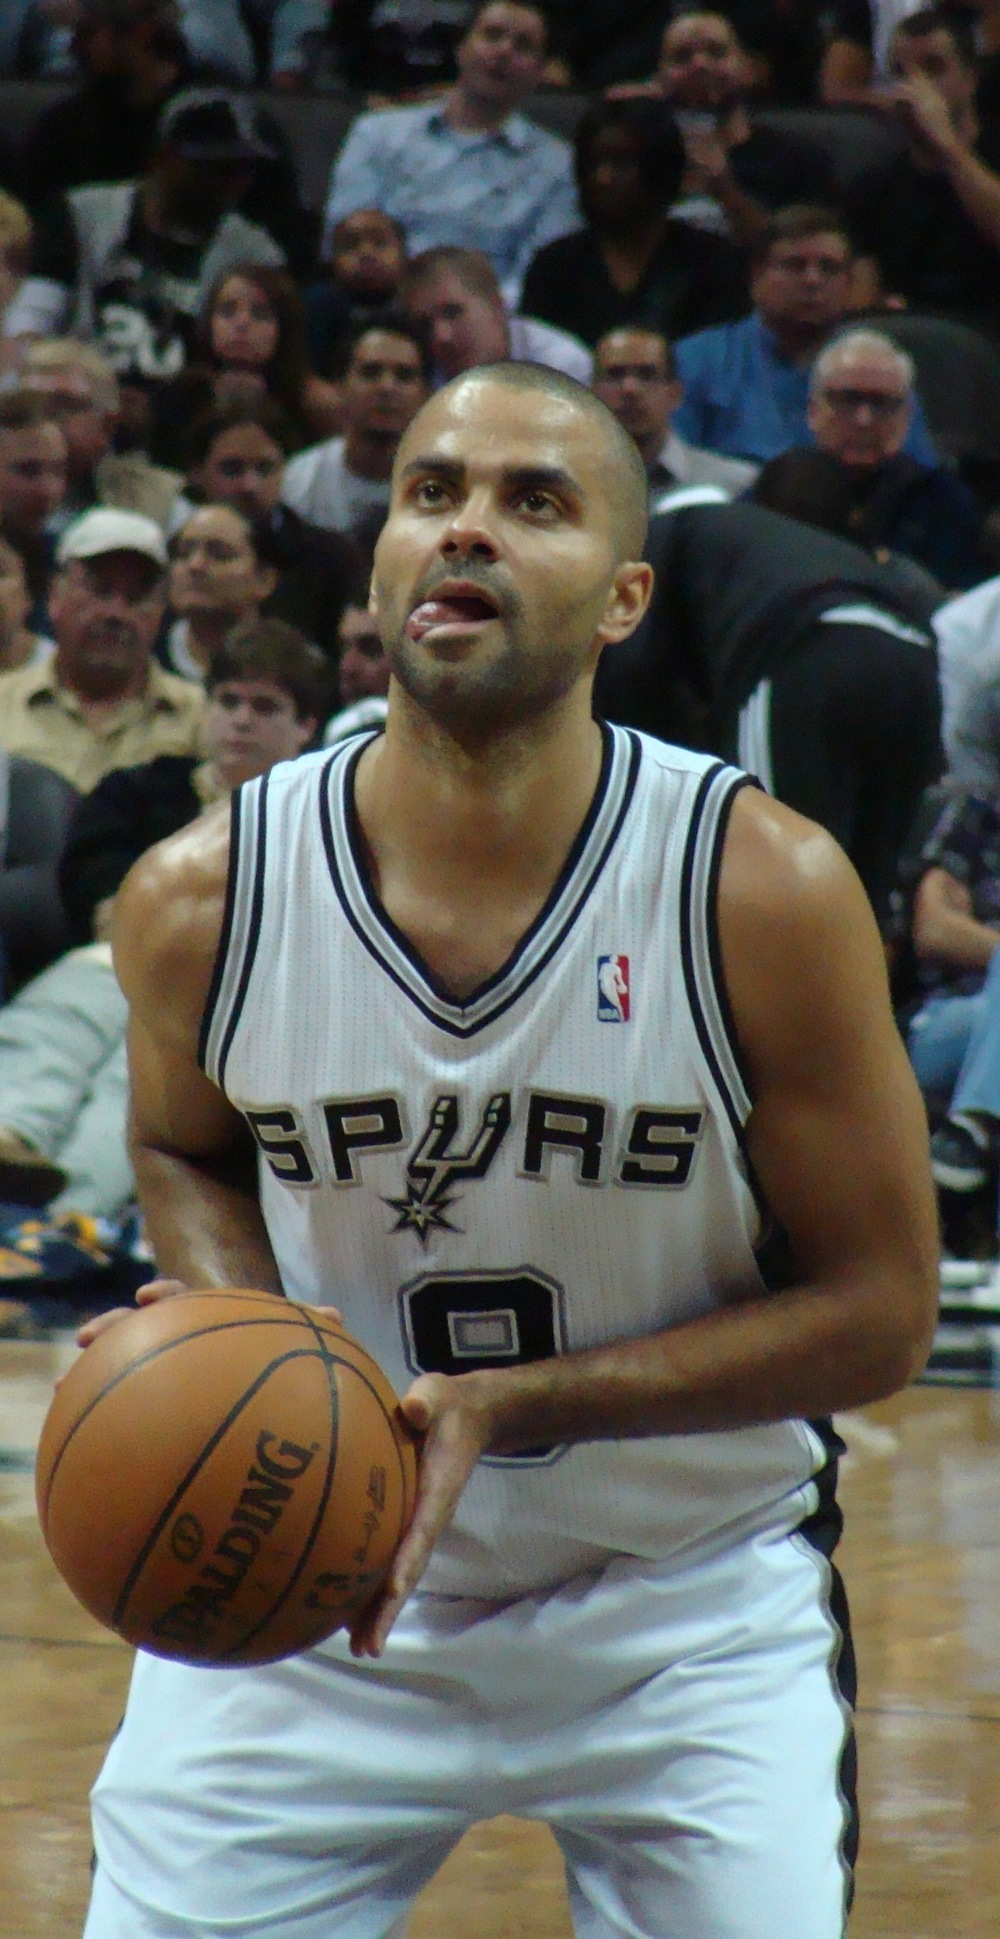 NBA star Tony Parker. Credit: Wikimedia Commons.